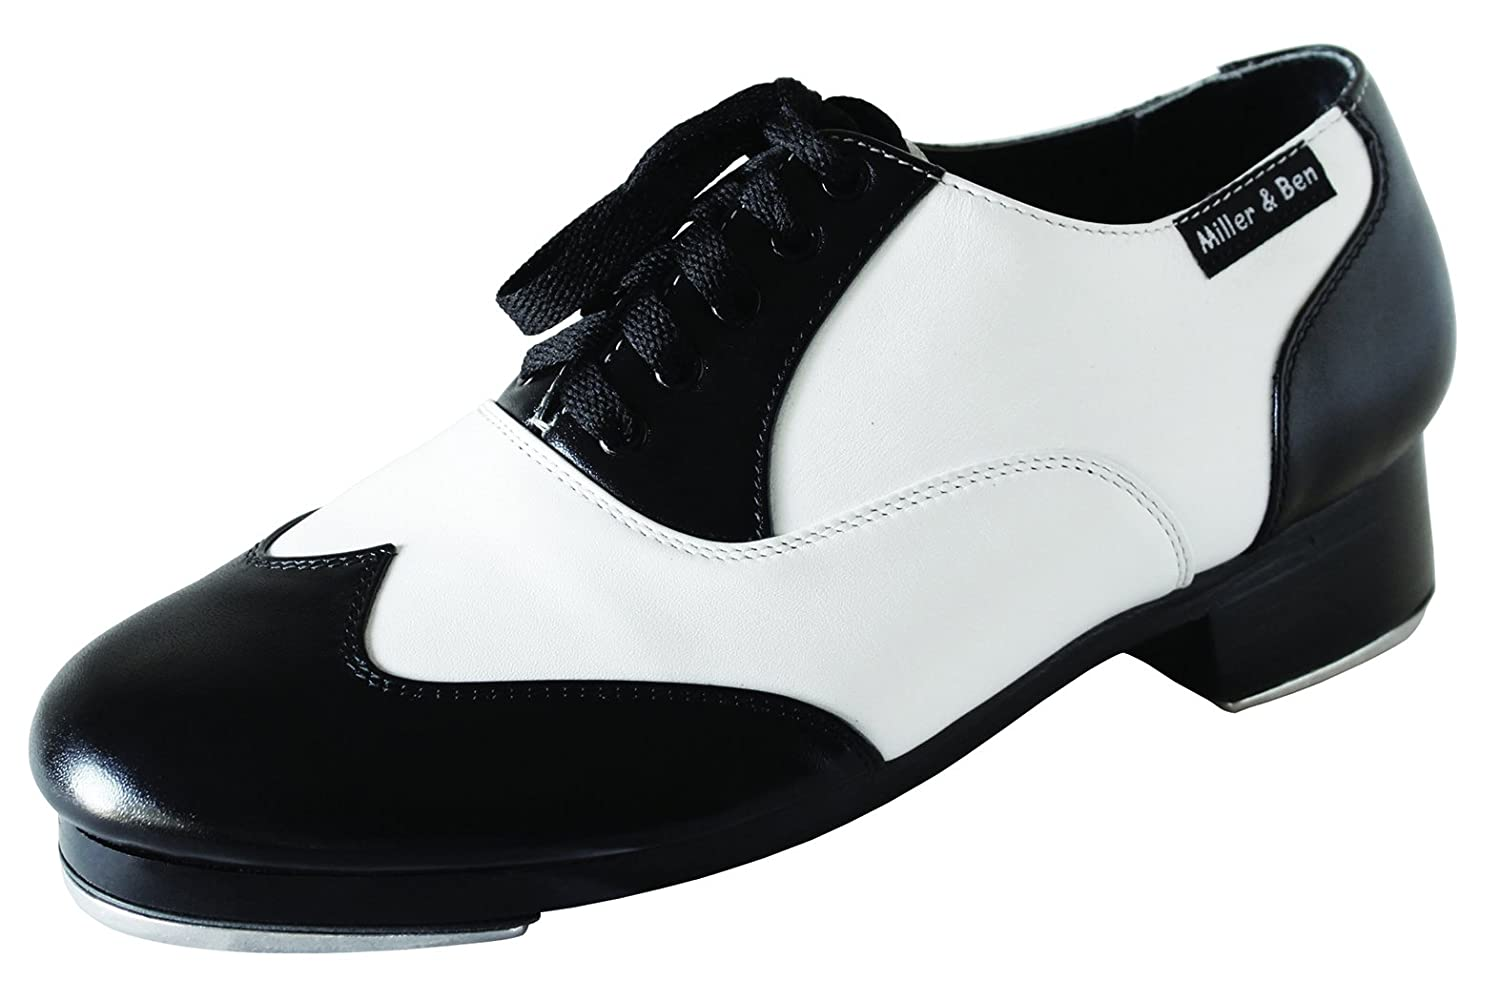 1950s Mens Shoes: Saddle Shoes, Boots, Greaser, Rockabilly Miller & Ben Tap Shoes Jazz-Tap Master Black & White - STANDARD SIZES $285.00 AT vintagedancer.com